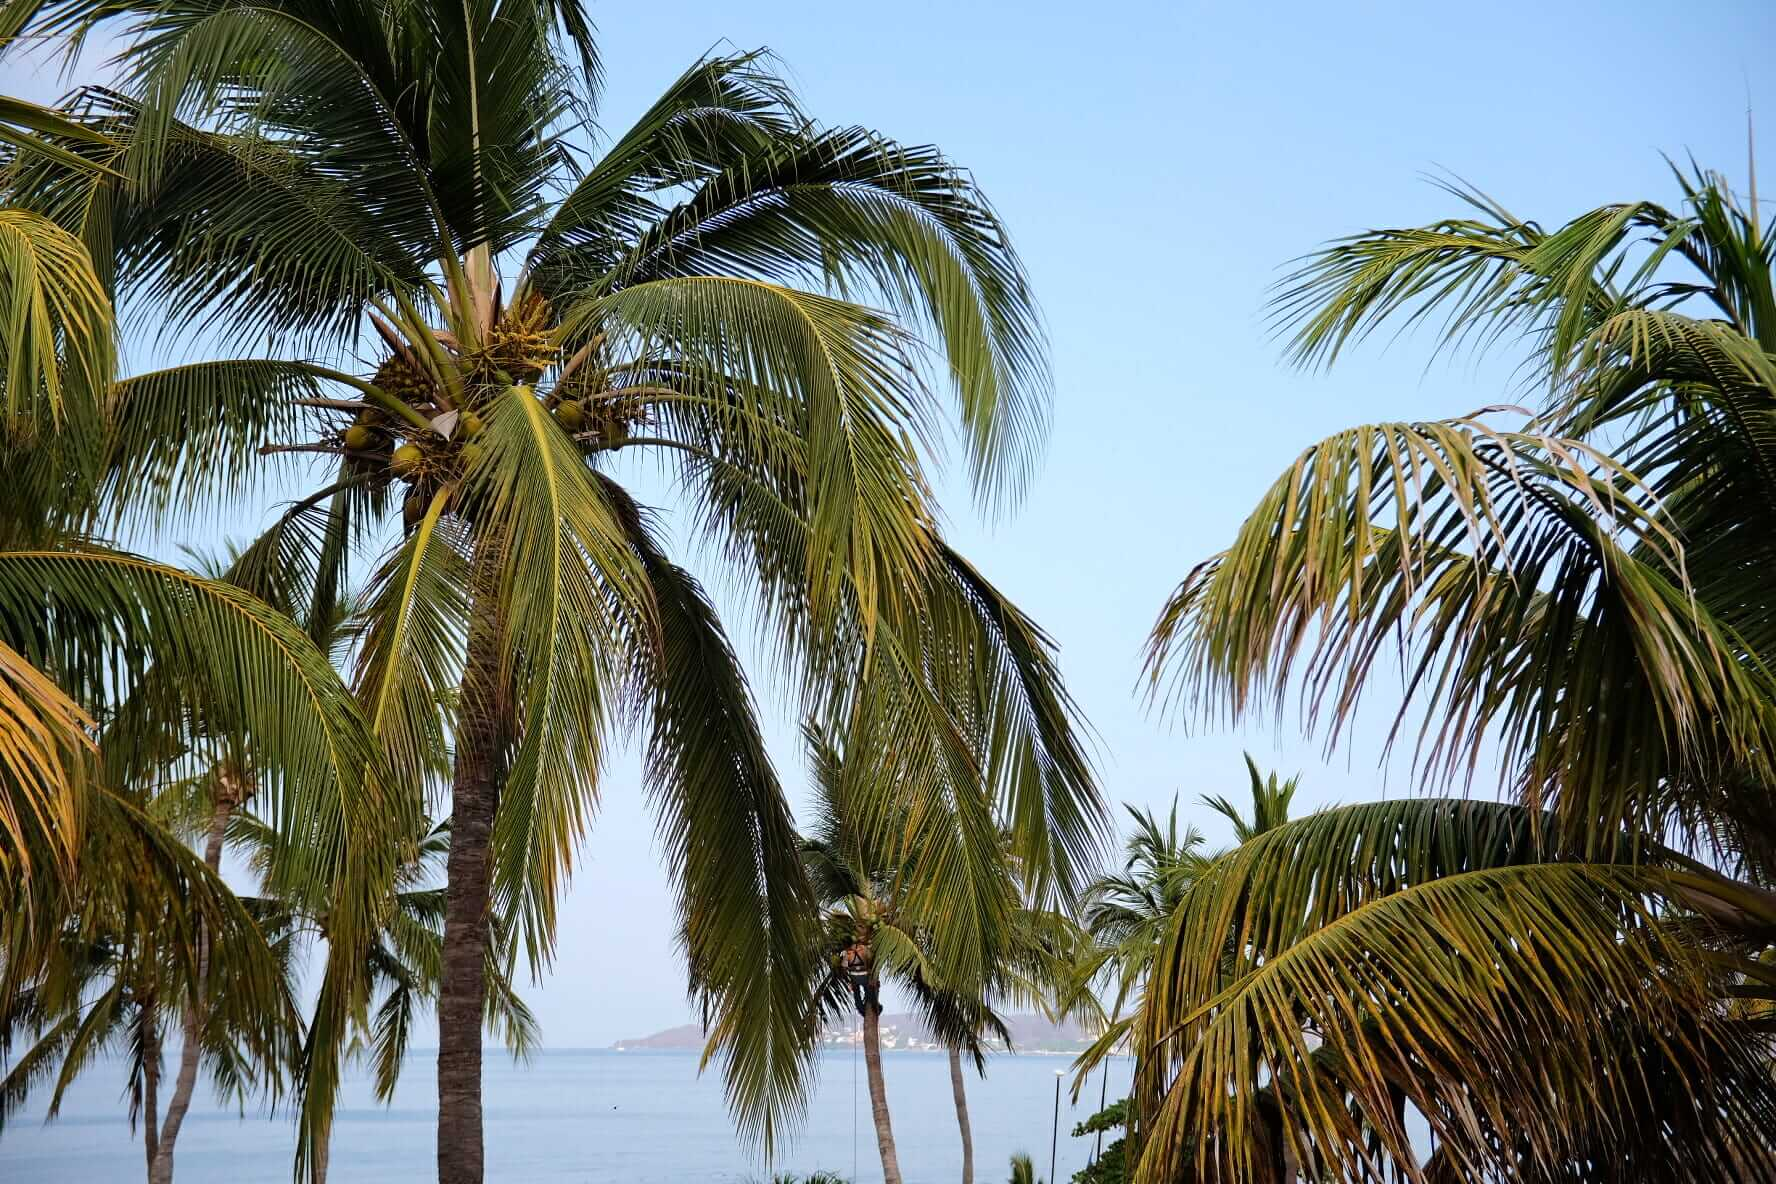 Man claiming the palm trees in Mexico